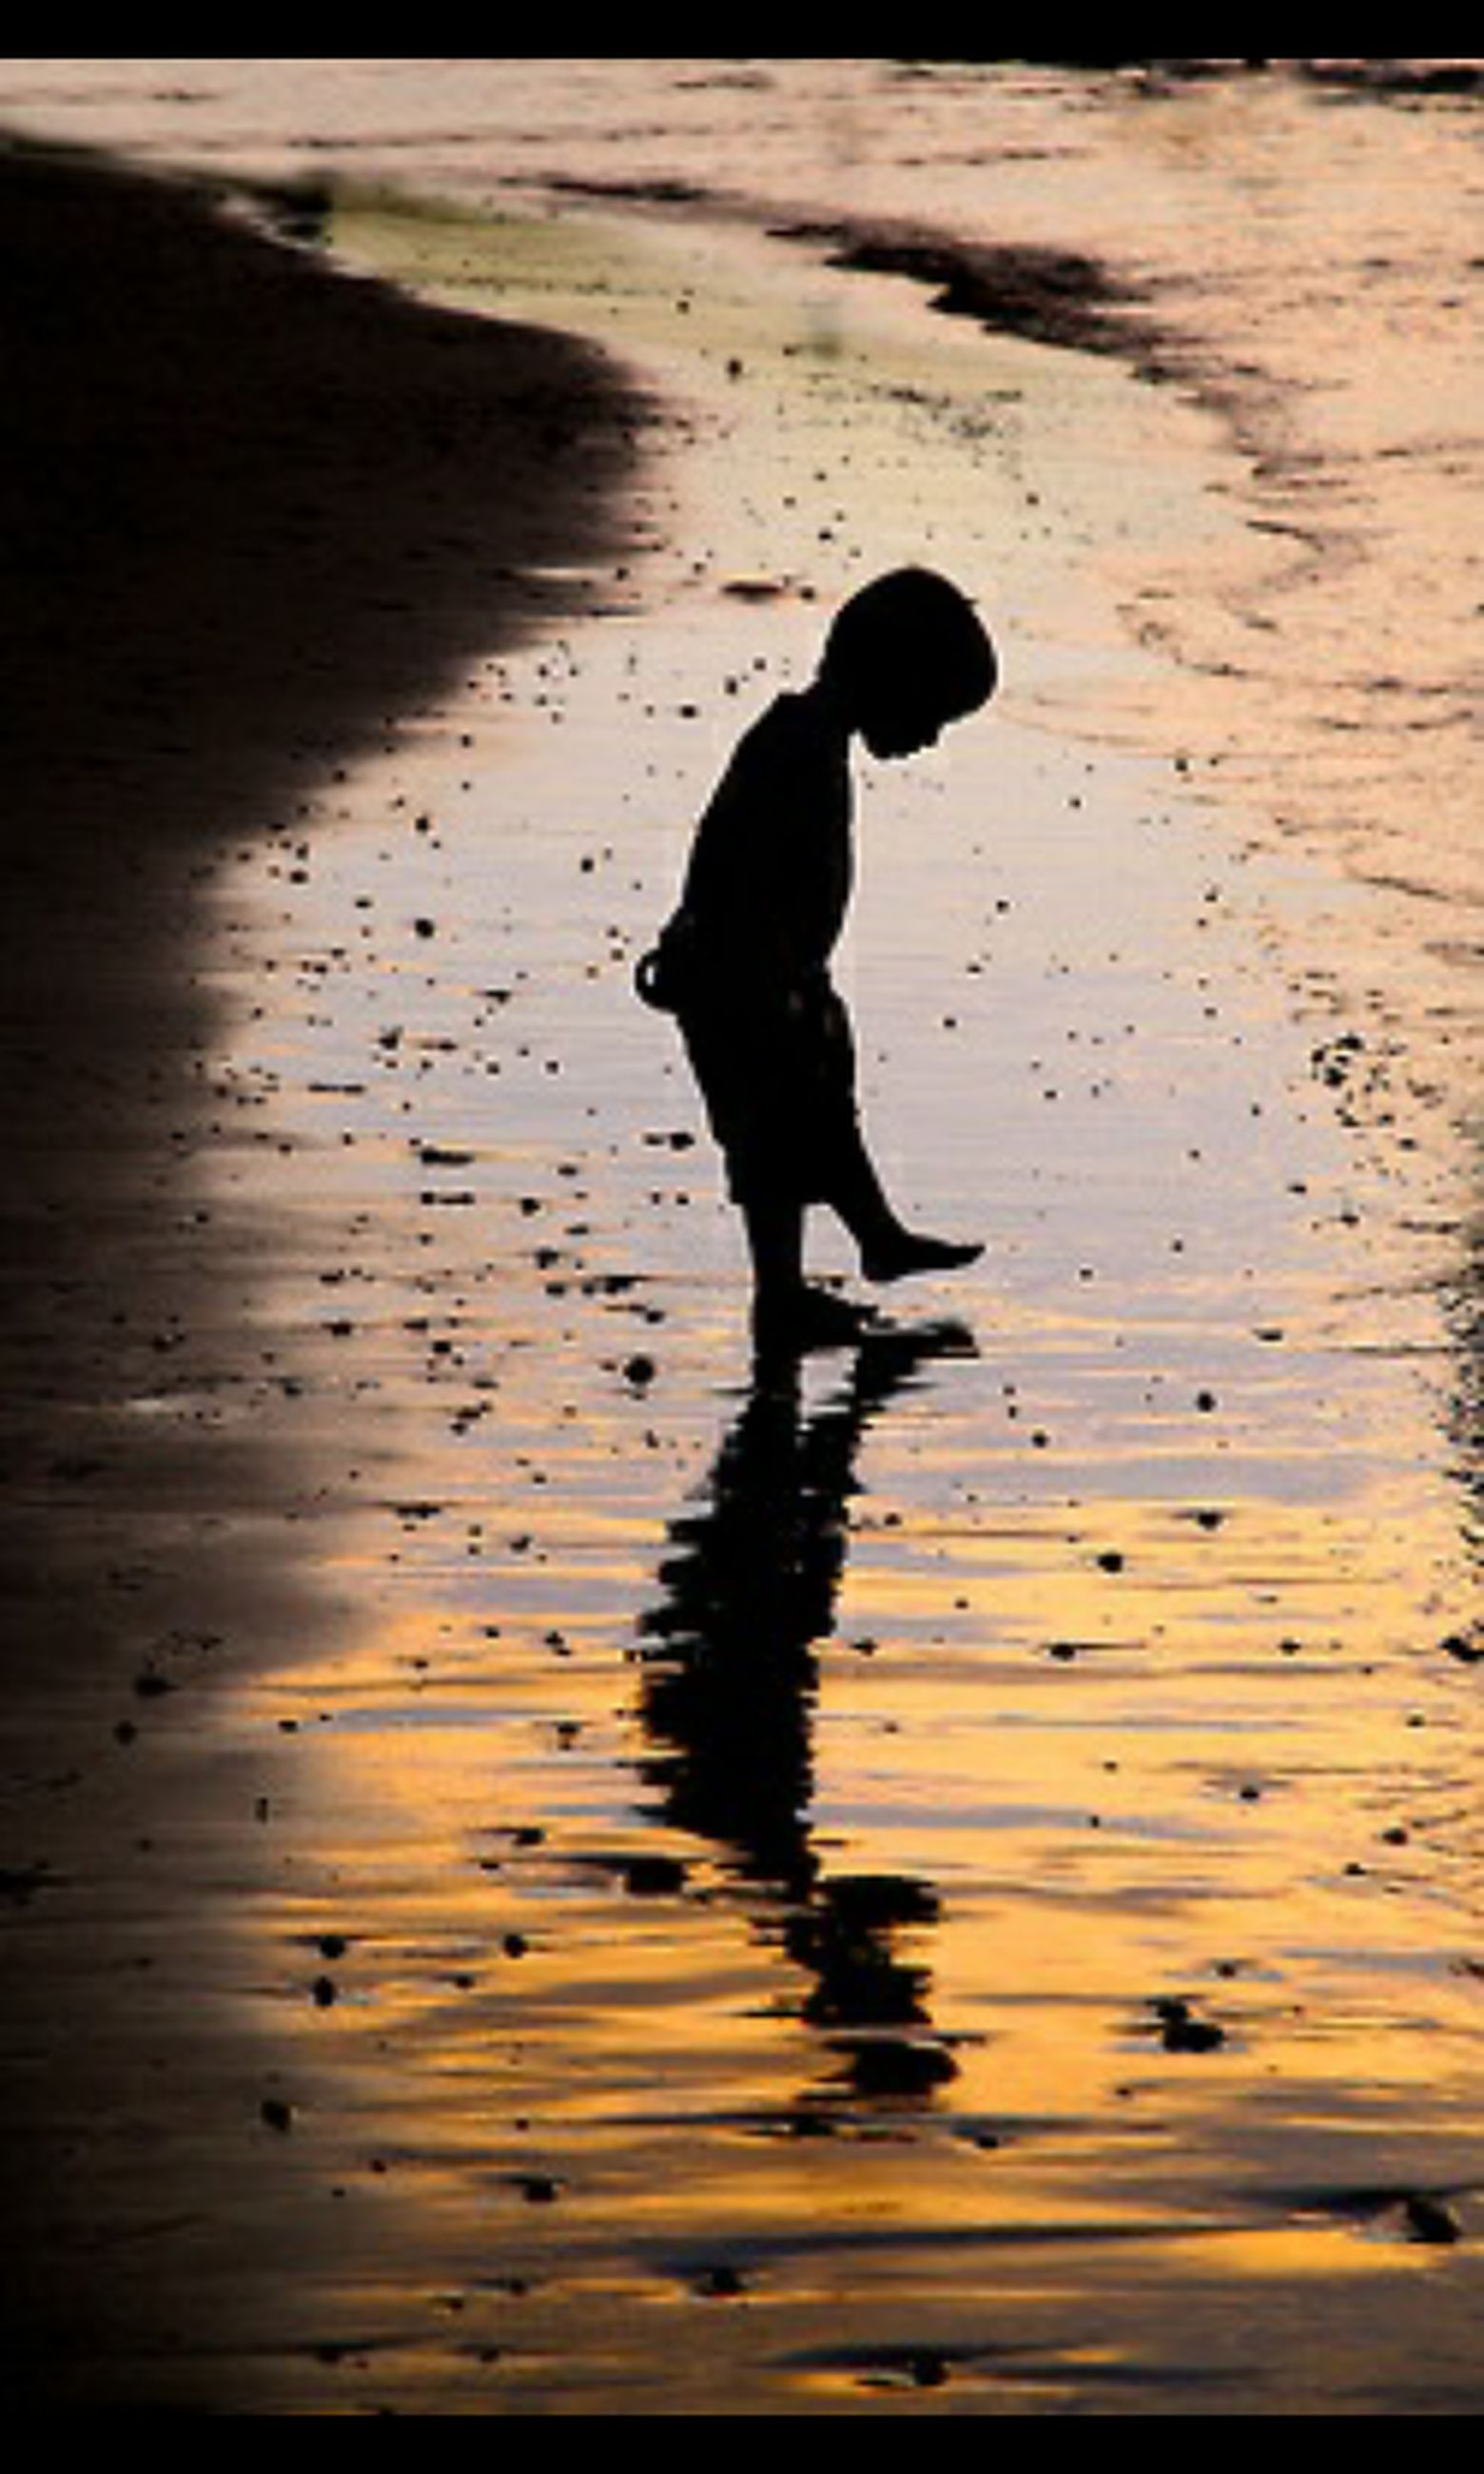 water, silhouette, walking, full length, reflection, shadow, one person, one animal, sunlight, beach, outdoors, sea, bird, wet, high angle view, sunset, shore, nature, standing, animal themes